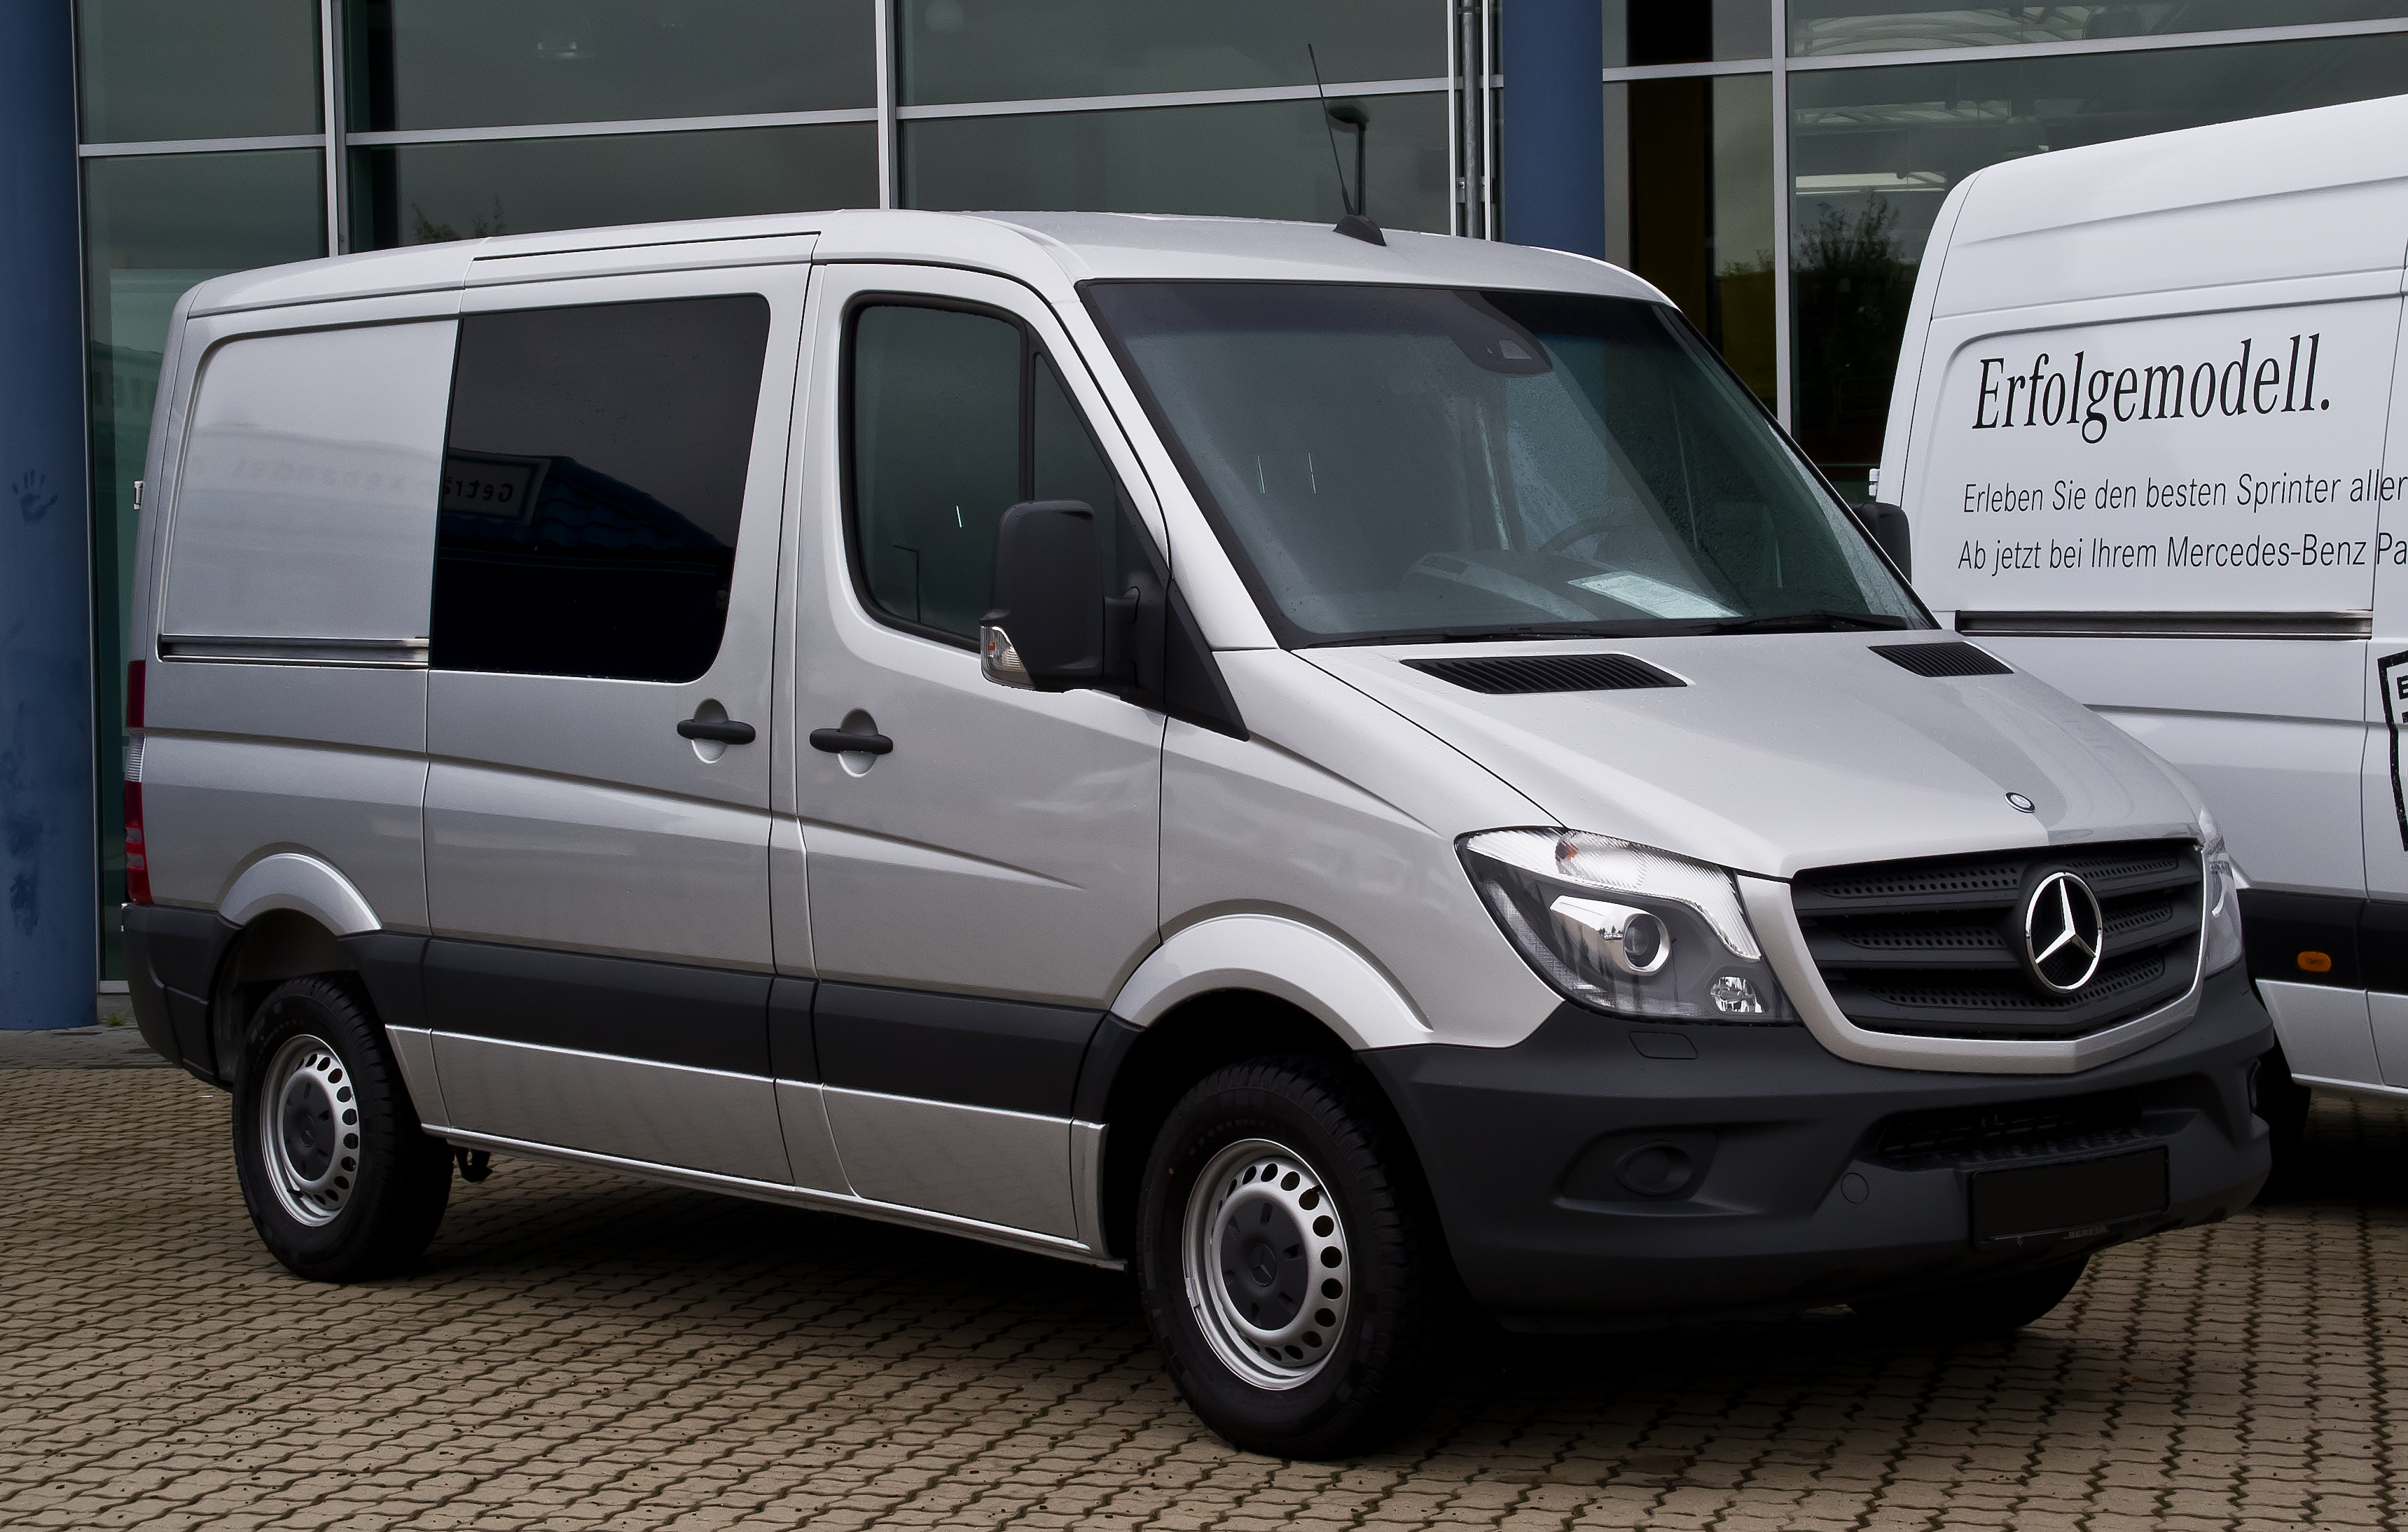 Mercedes-Benz Sprinter 216 2014 photo - 7